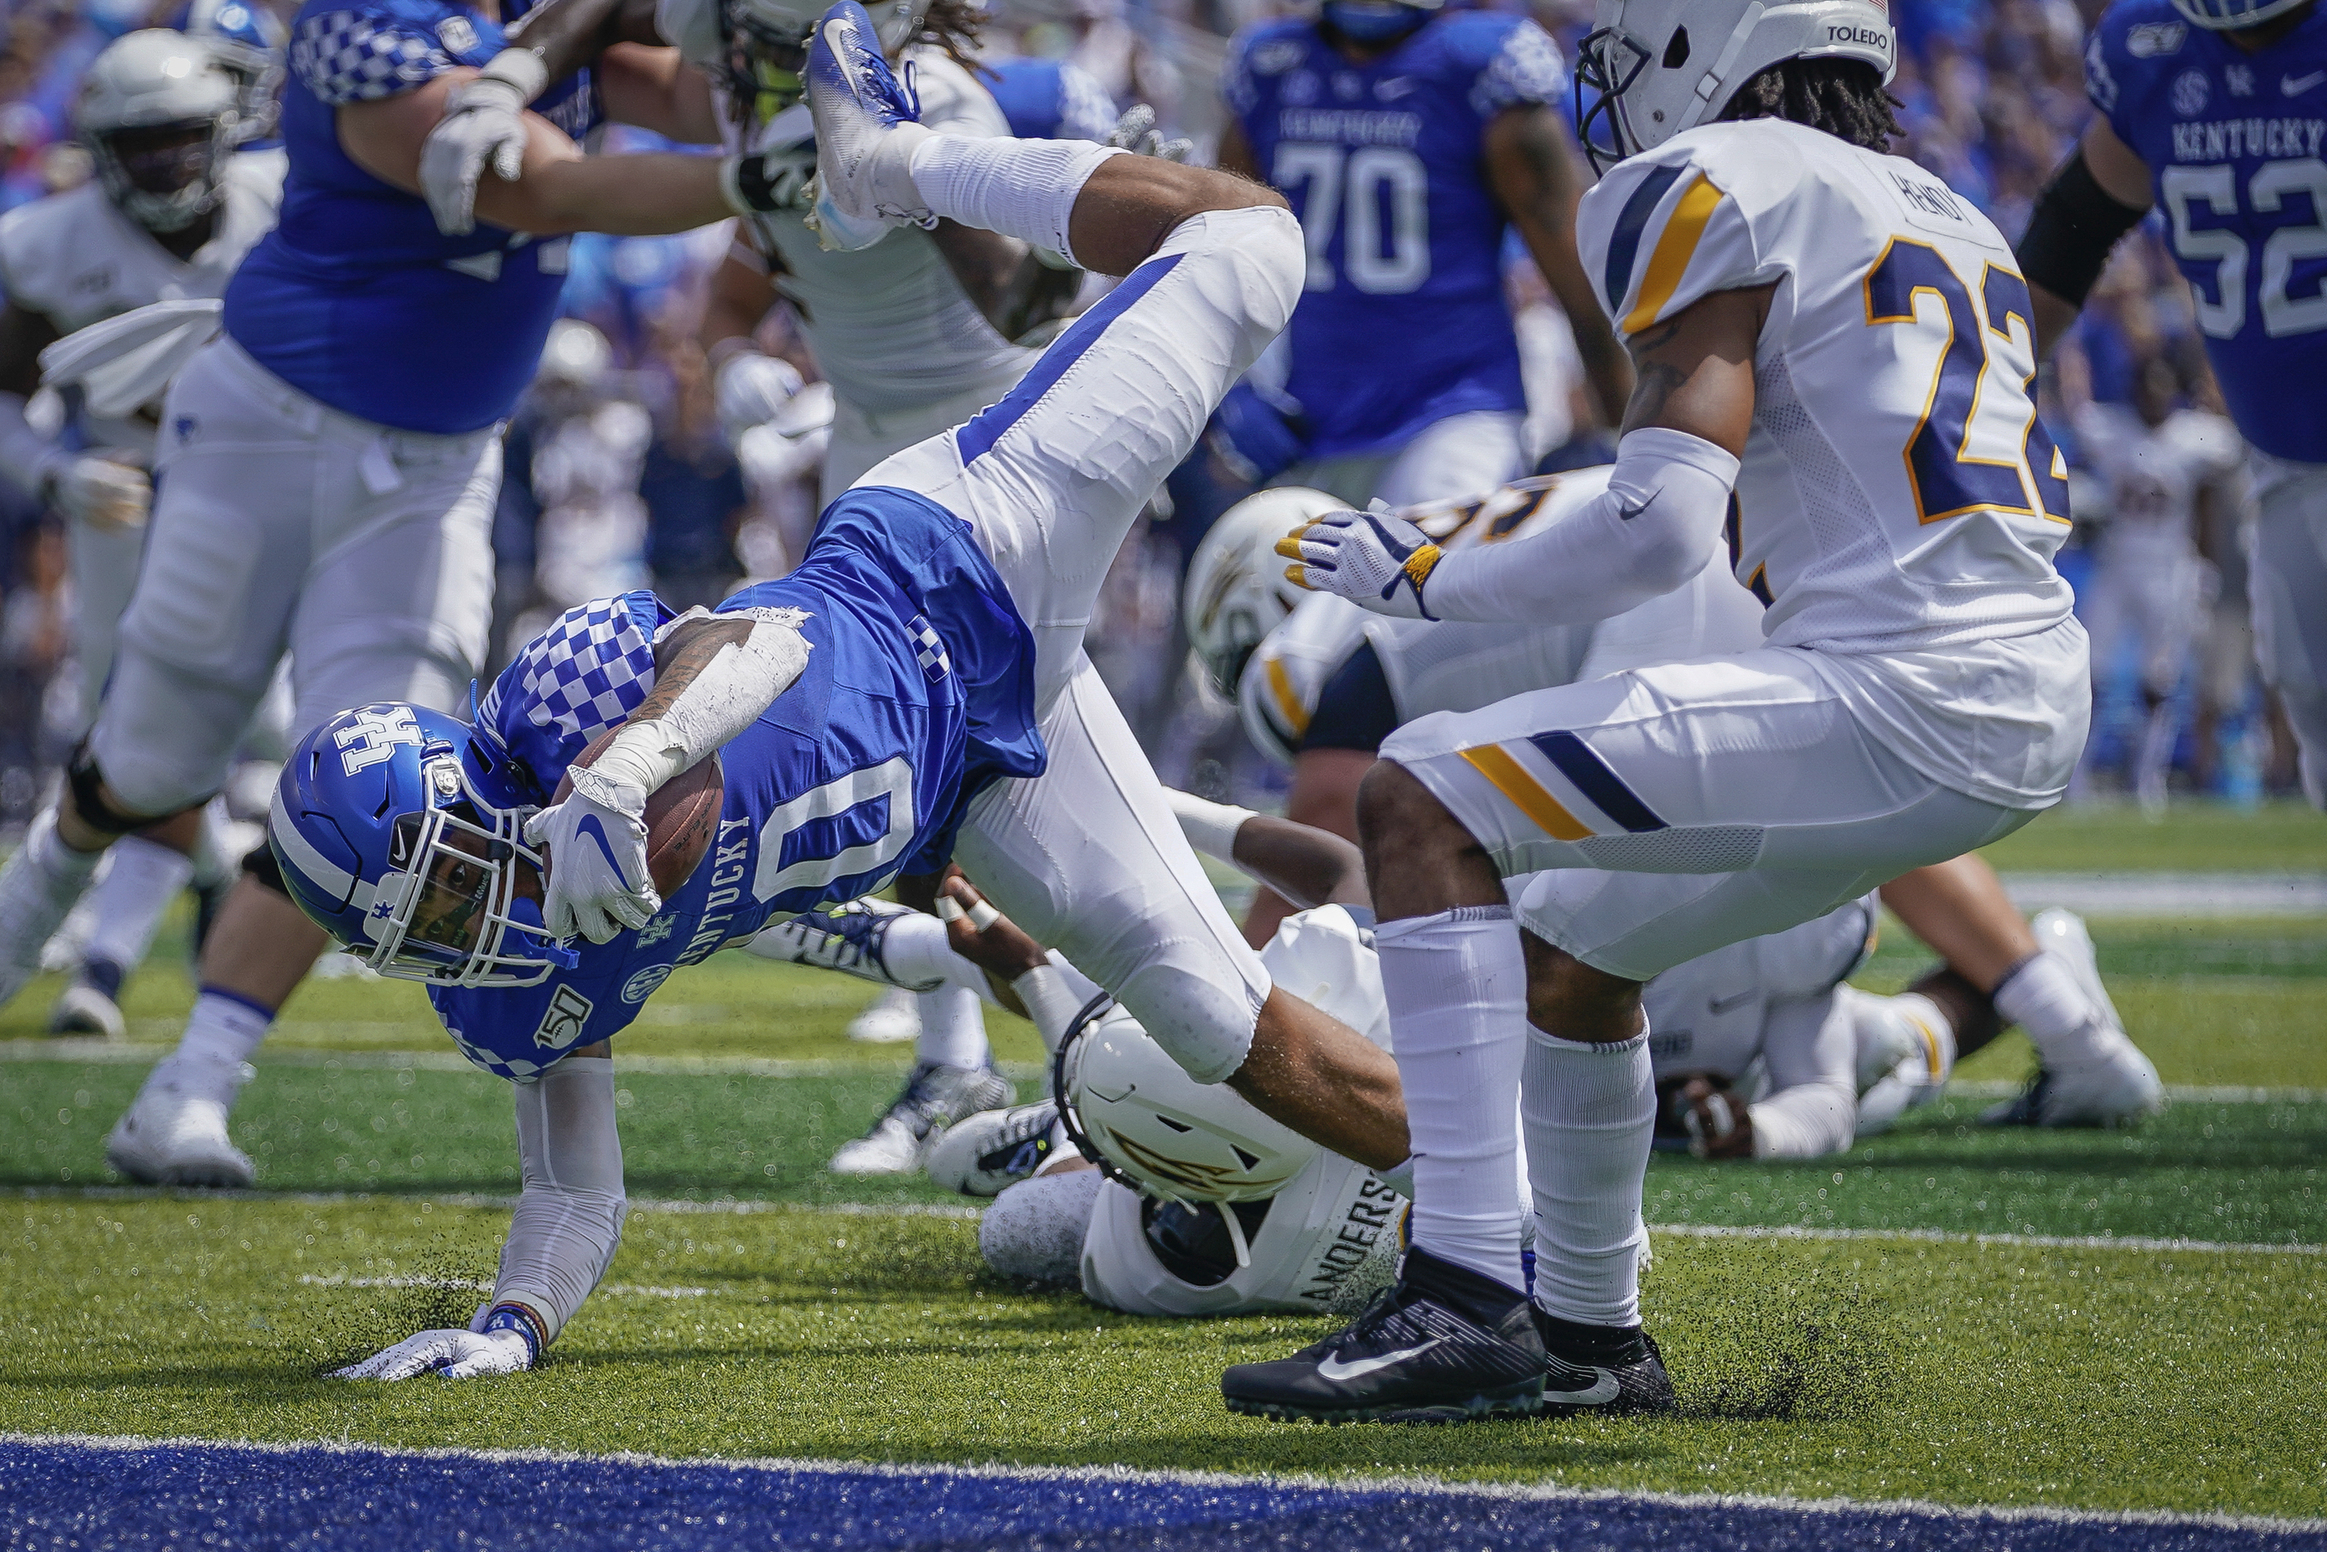 Wilson's 2 touchdown passes lead Kentucky past Toledo 38-24